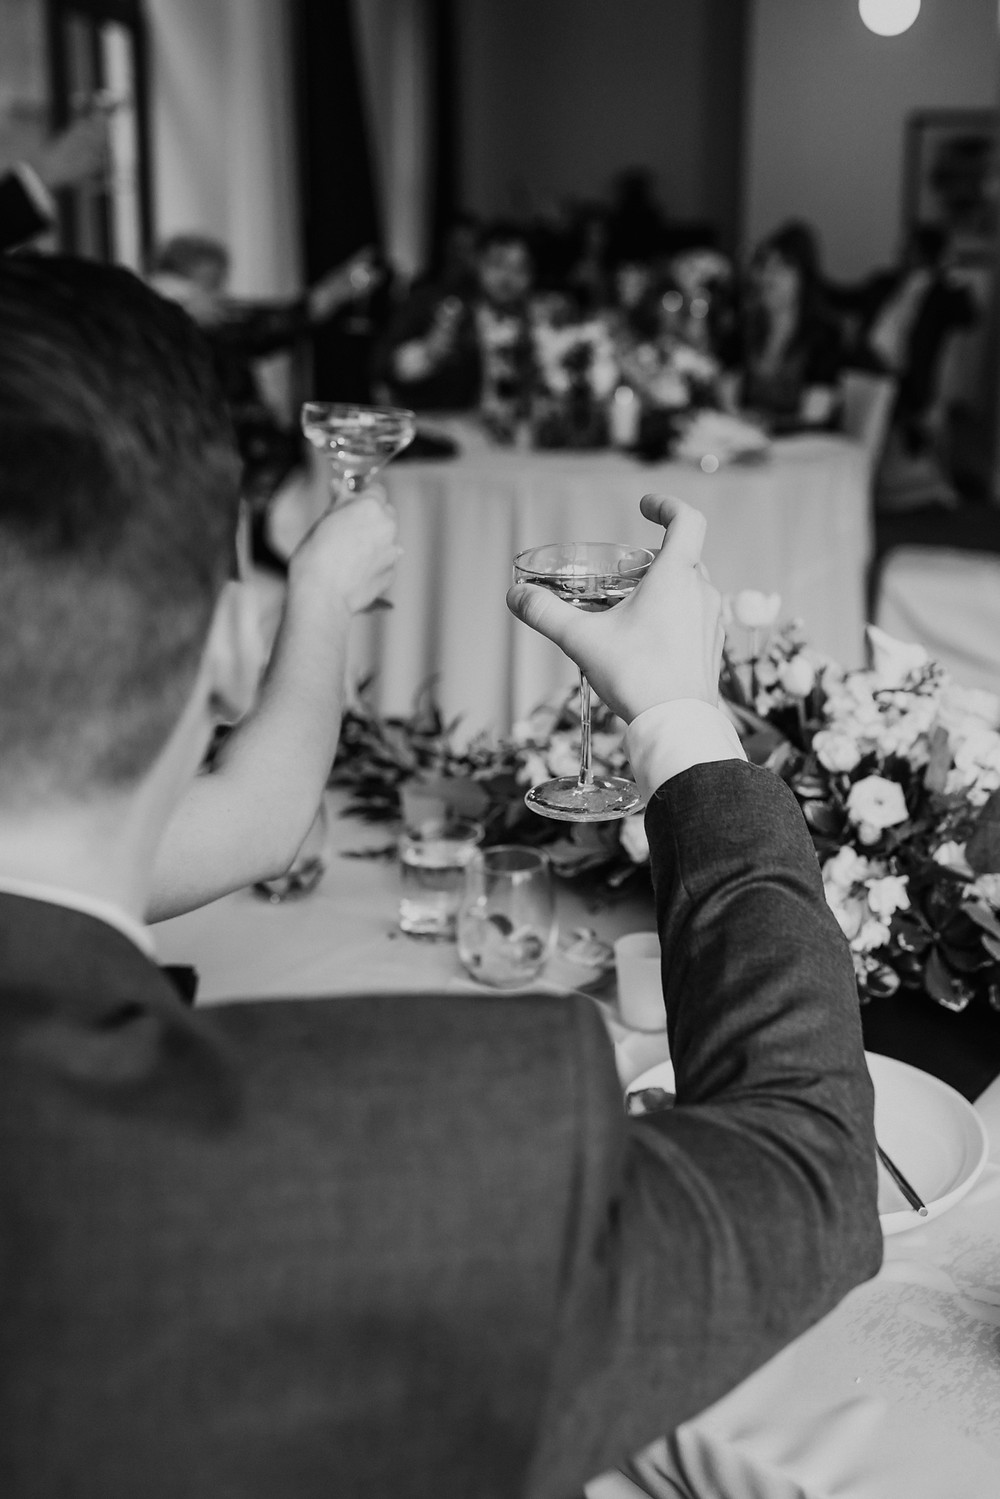 Wedding day toast with champagne. Photographed by Nicole Leanne Photography.